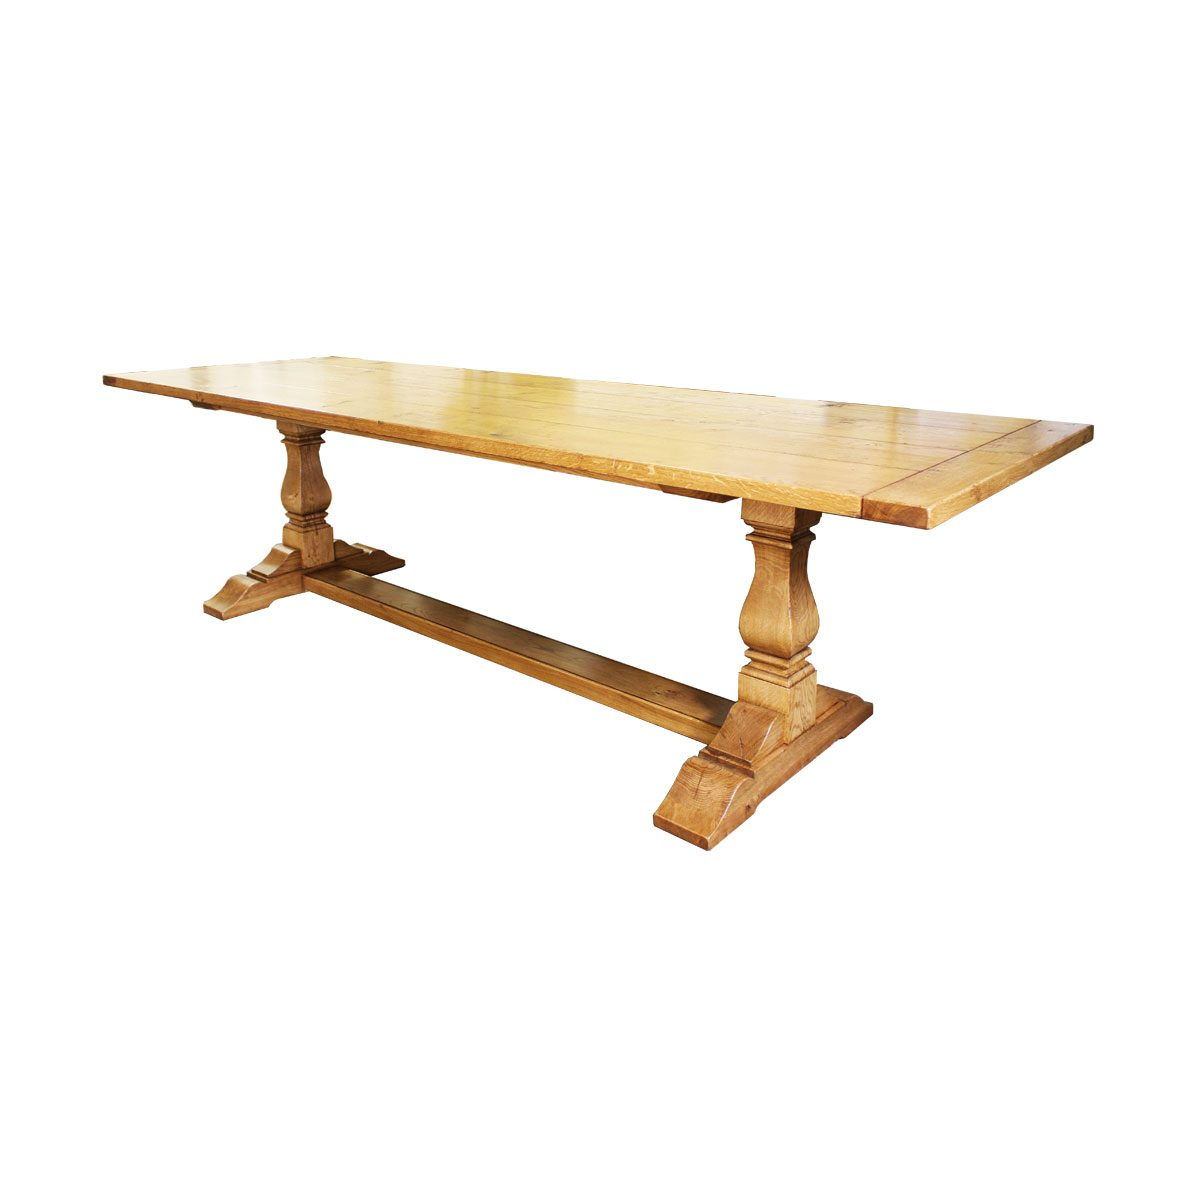 "Bespoke 5"" Leg Square Cut Refectory Table Handcrafted in Suffolk"